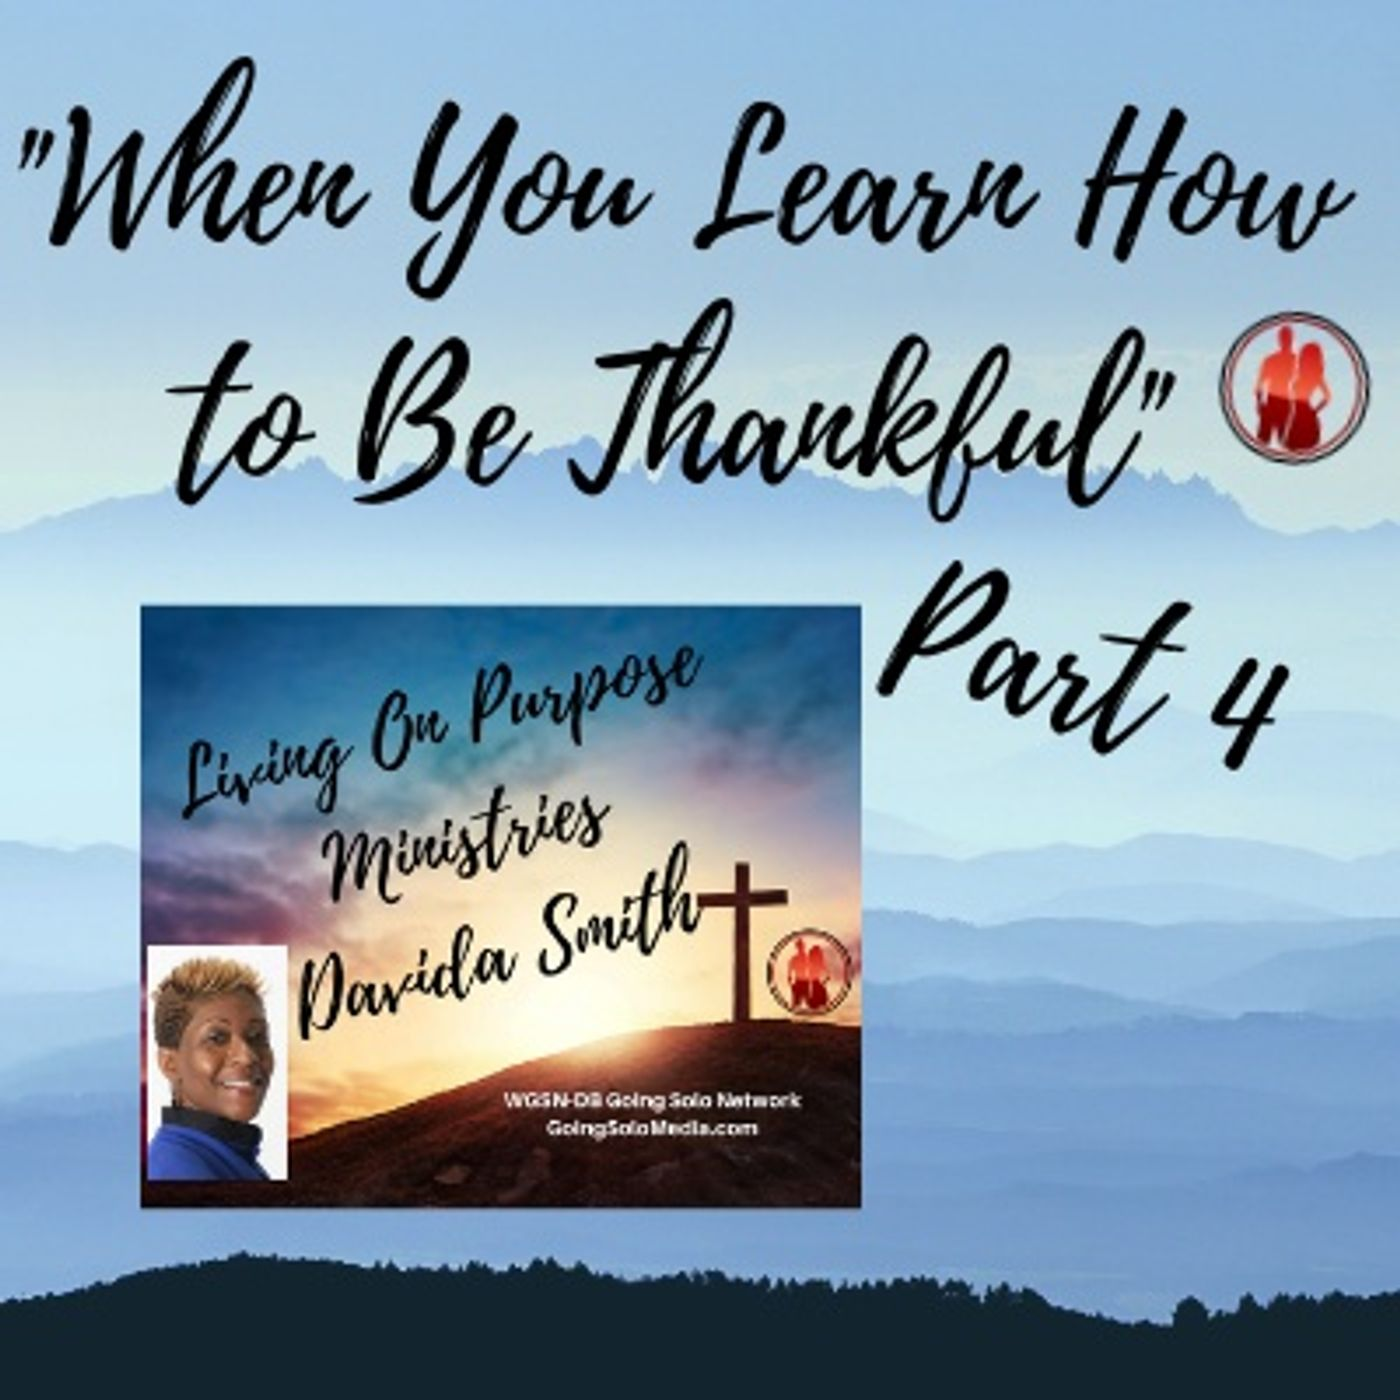 When You Learn How to Be Thankful - Part 4